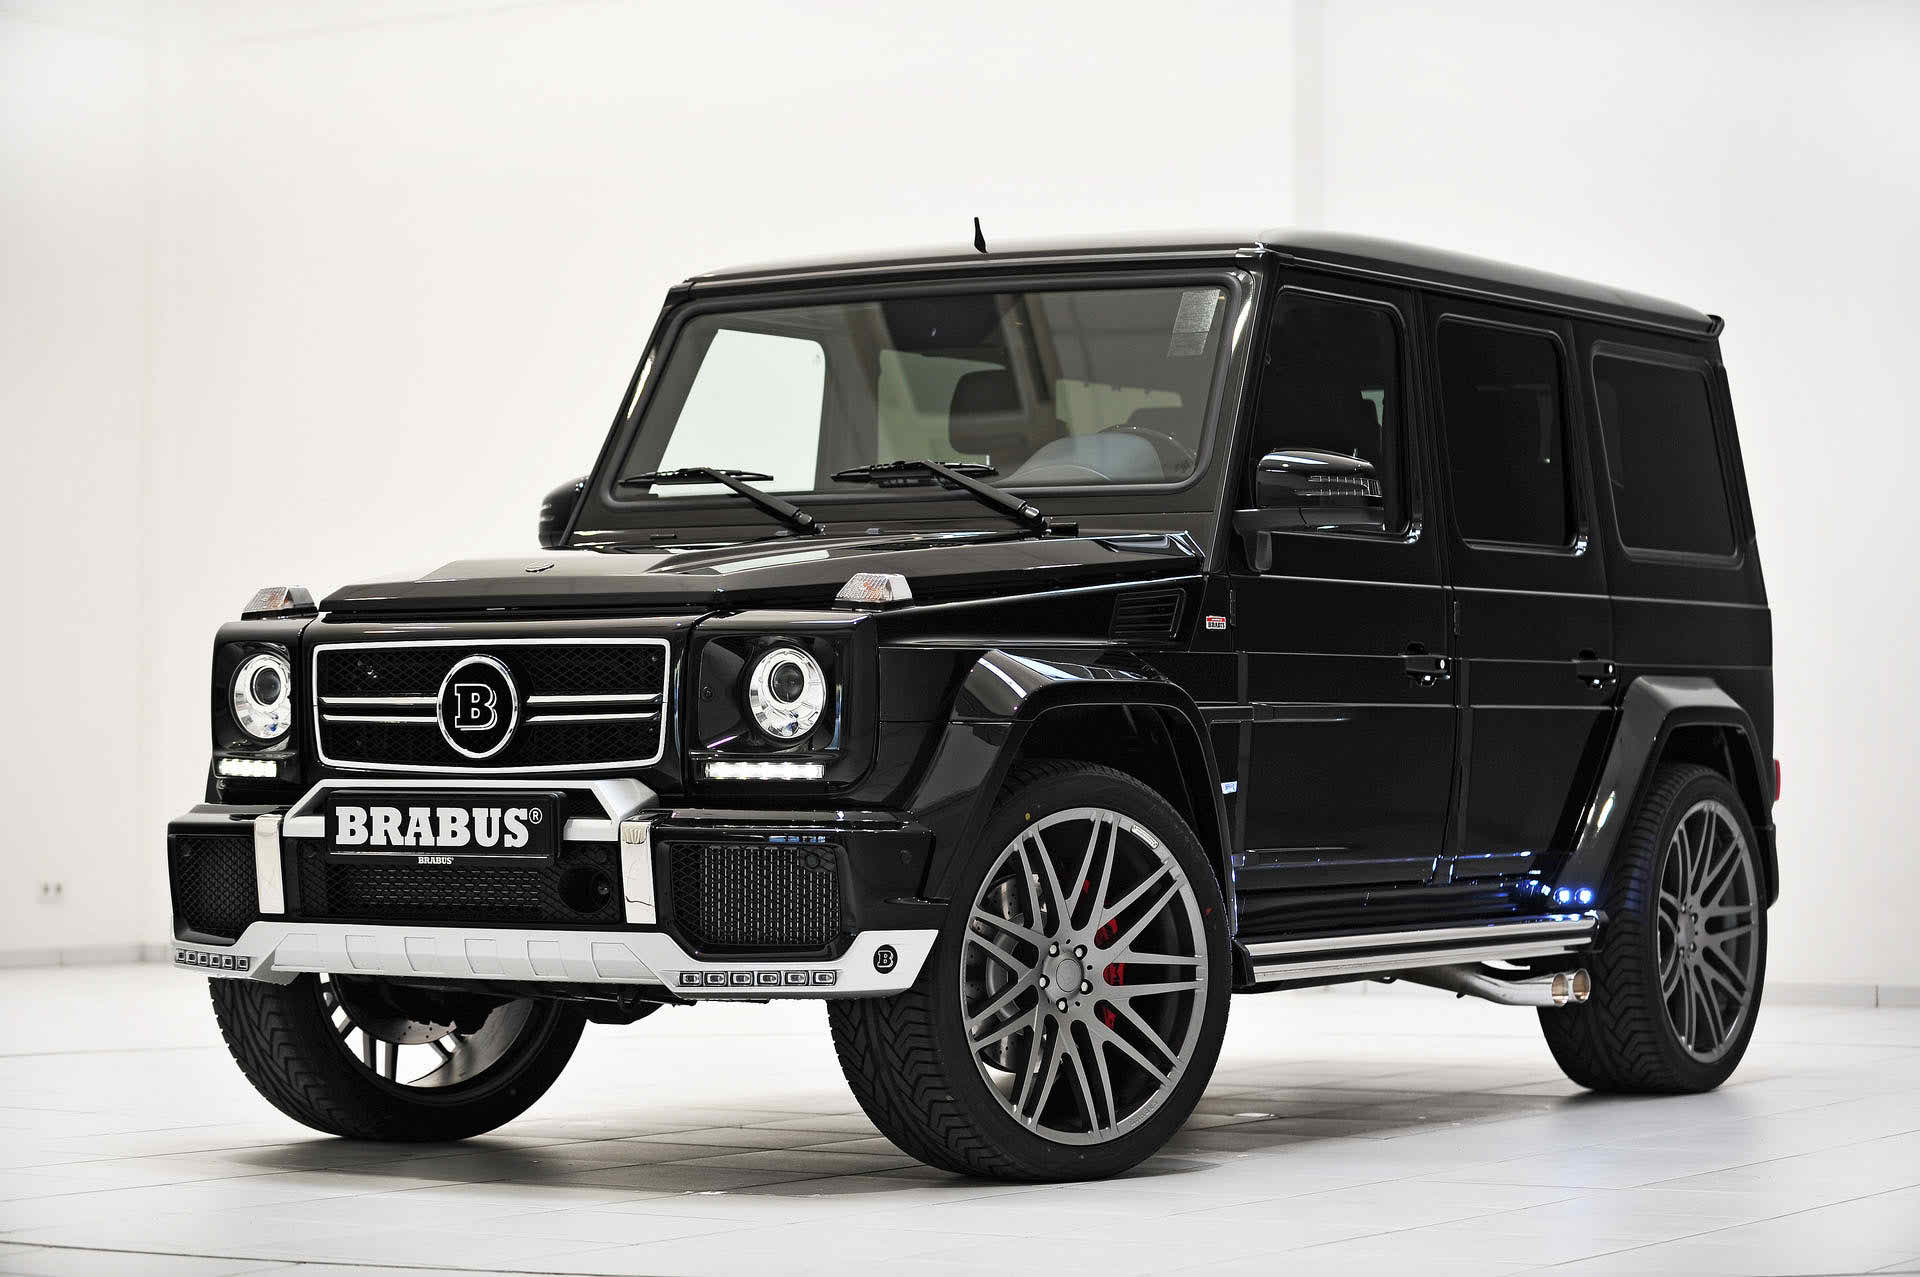 brabus g63 g65 amg widestar conversion kit mercedes g class parts. Black Bedroom Furniture Sets. Home Design Ideas